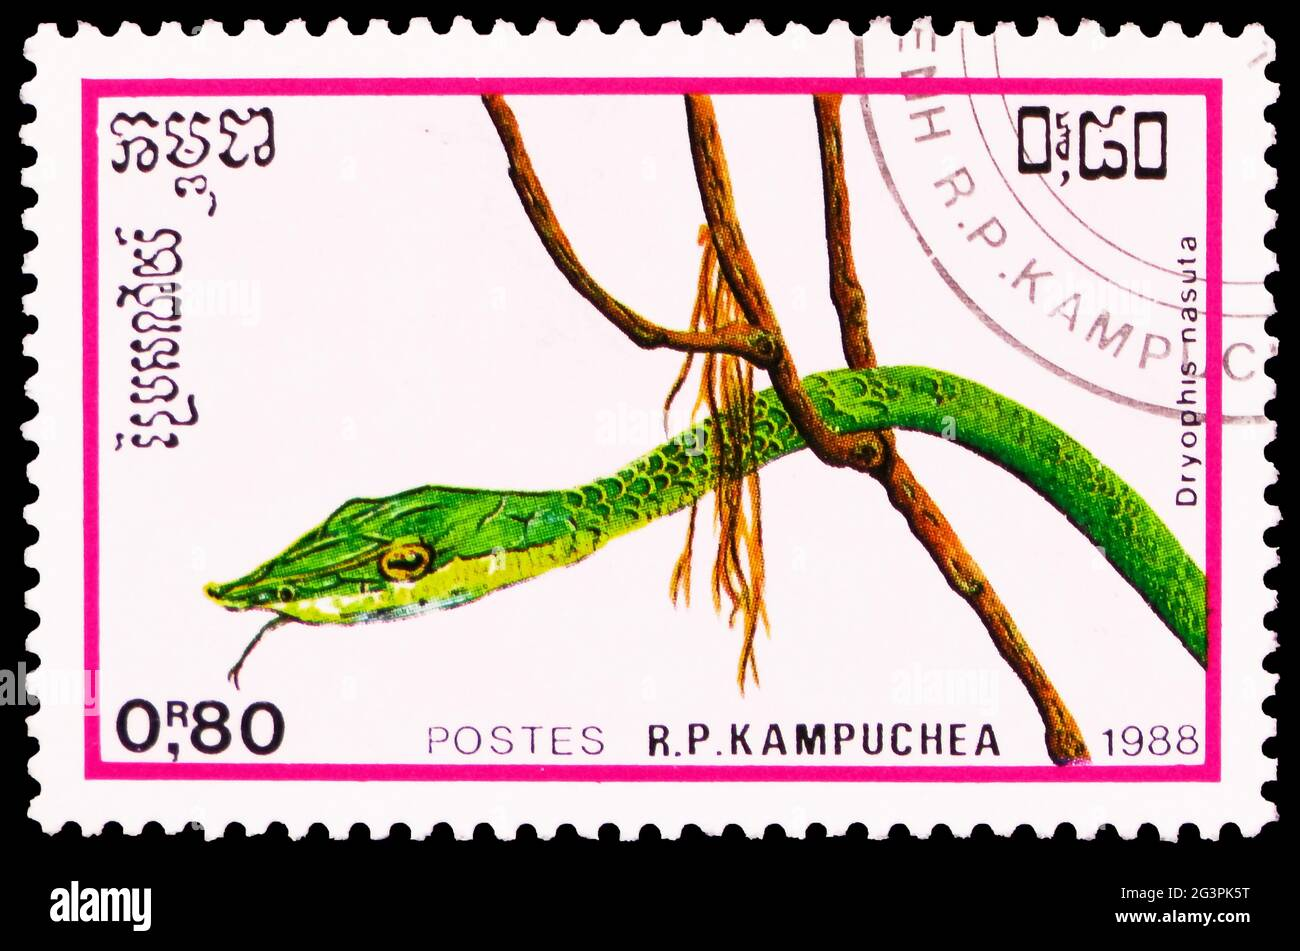 MOSCOW, RUSSIA - MARCH 29, 2020: Postage stamp printed in Kampuchea (Cambodia) shows Asian Vine Snake (Dryophis nasuta), Reptiles serie, circa 1988 Stock Photo